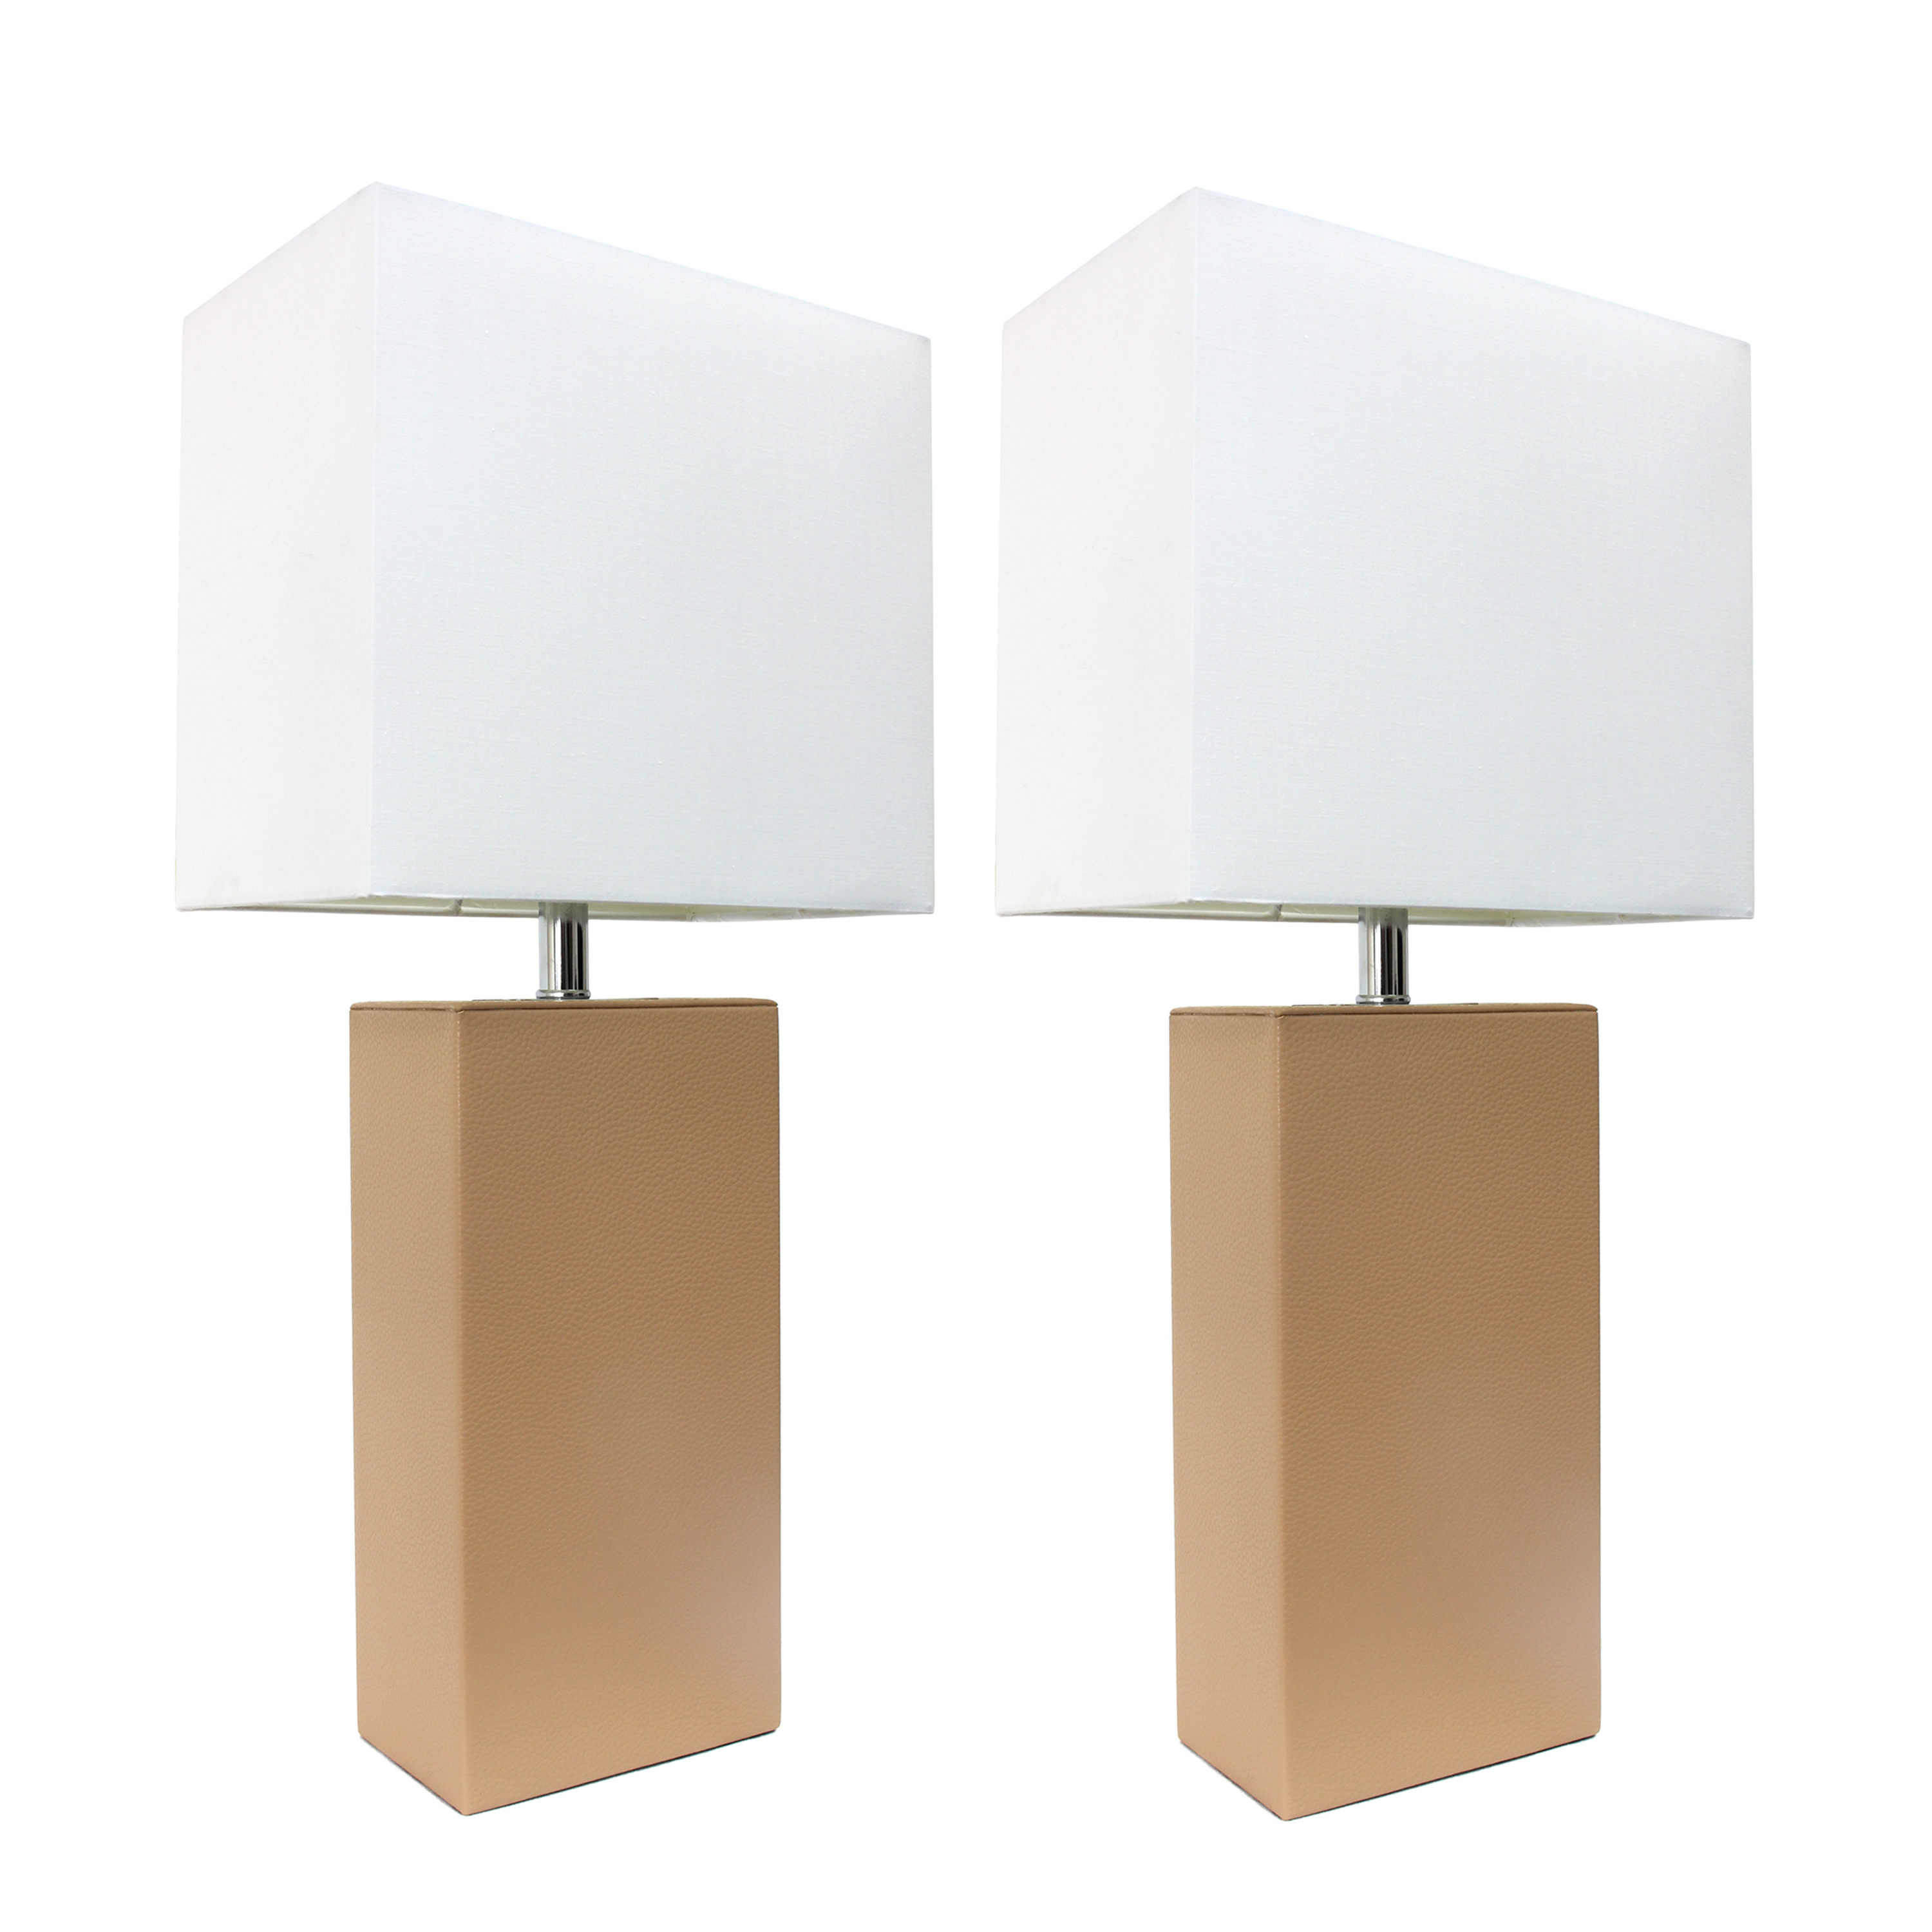 Alltherages LC2000-BGE-2PK Elegant Designs Modern Leather Table Lamp with White Fabric Shade - Beige Pack of 2